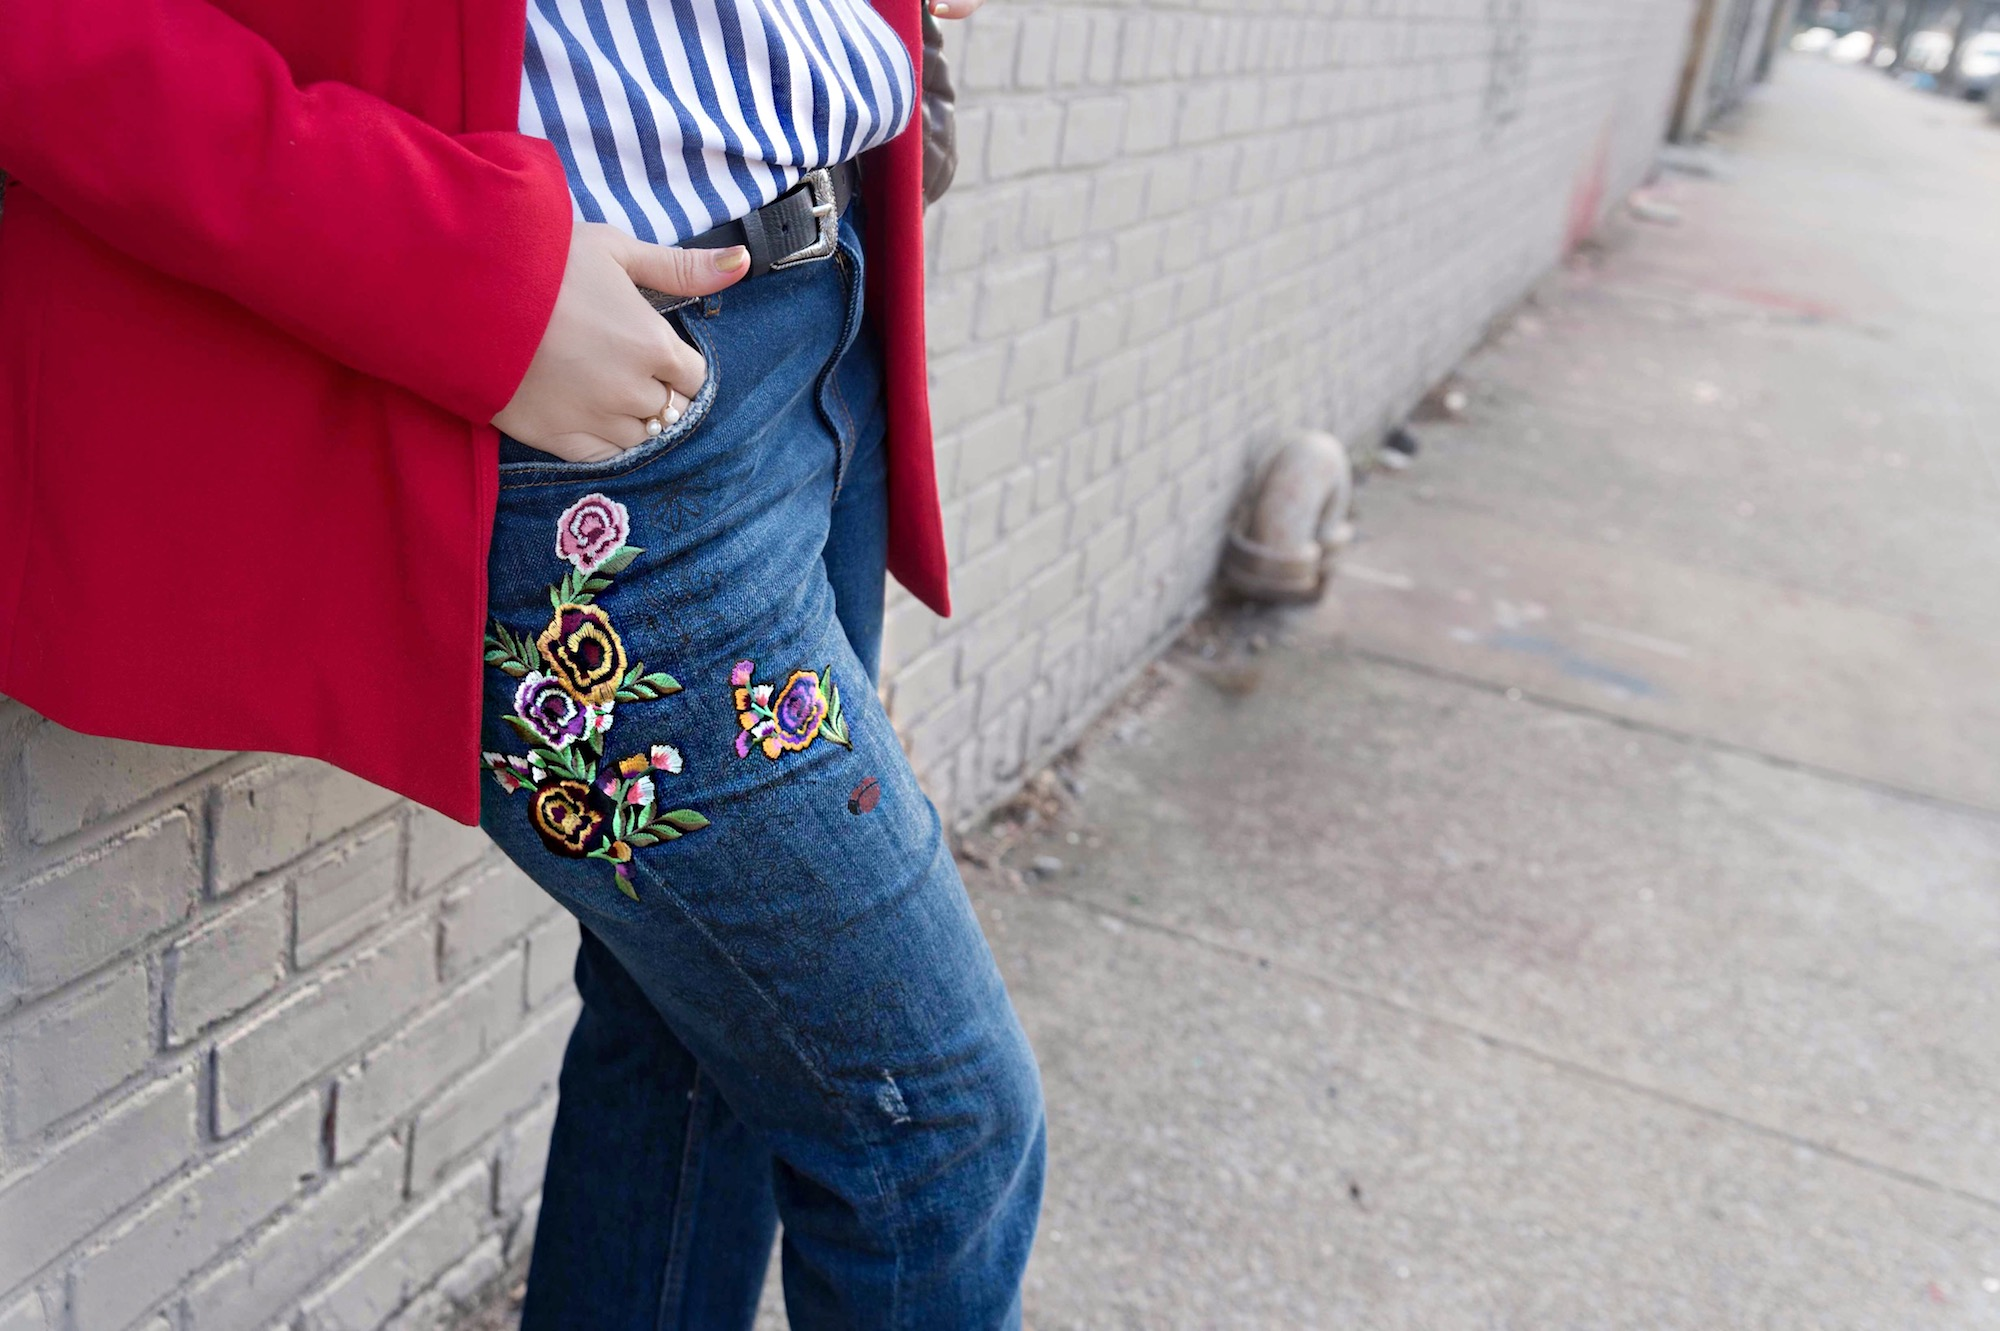 embroidered-jeans-red-blazer-casual-chic